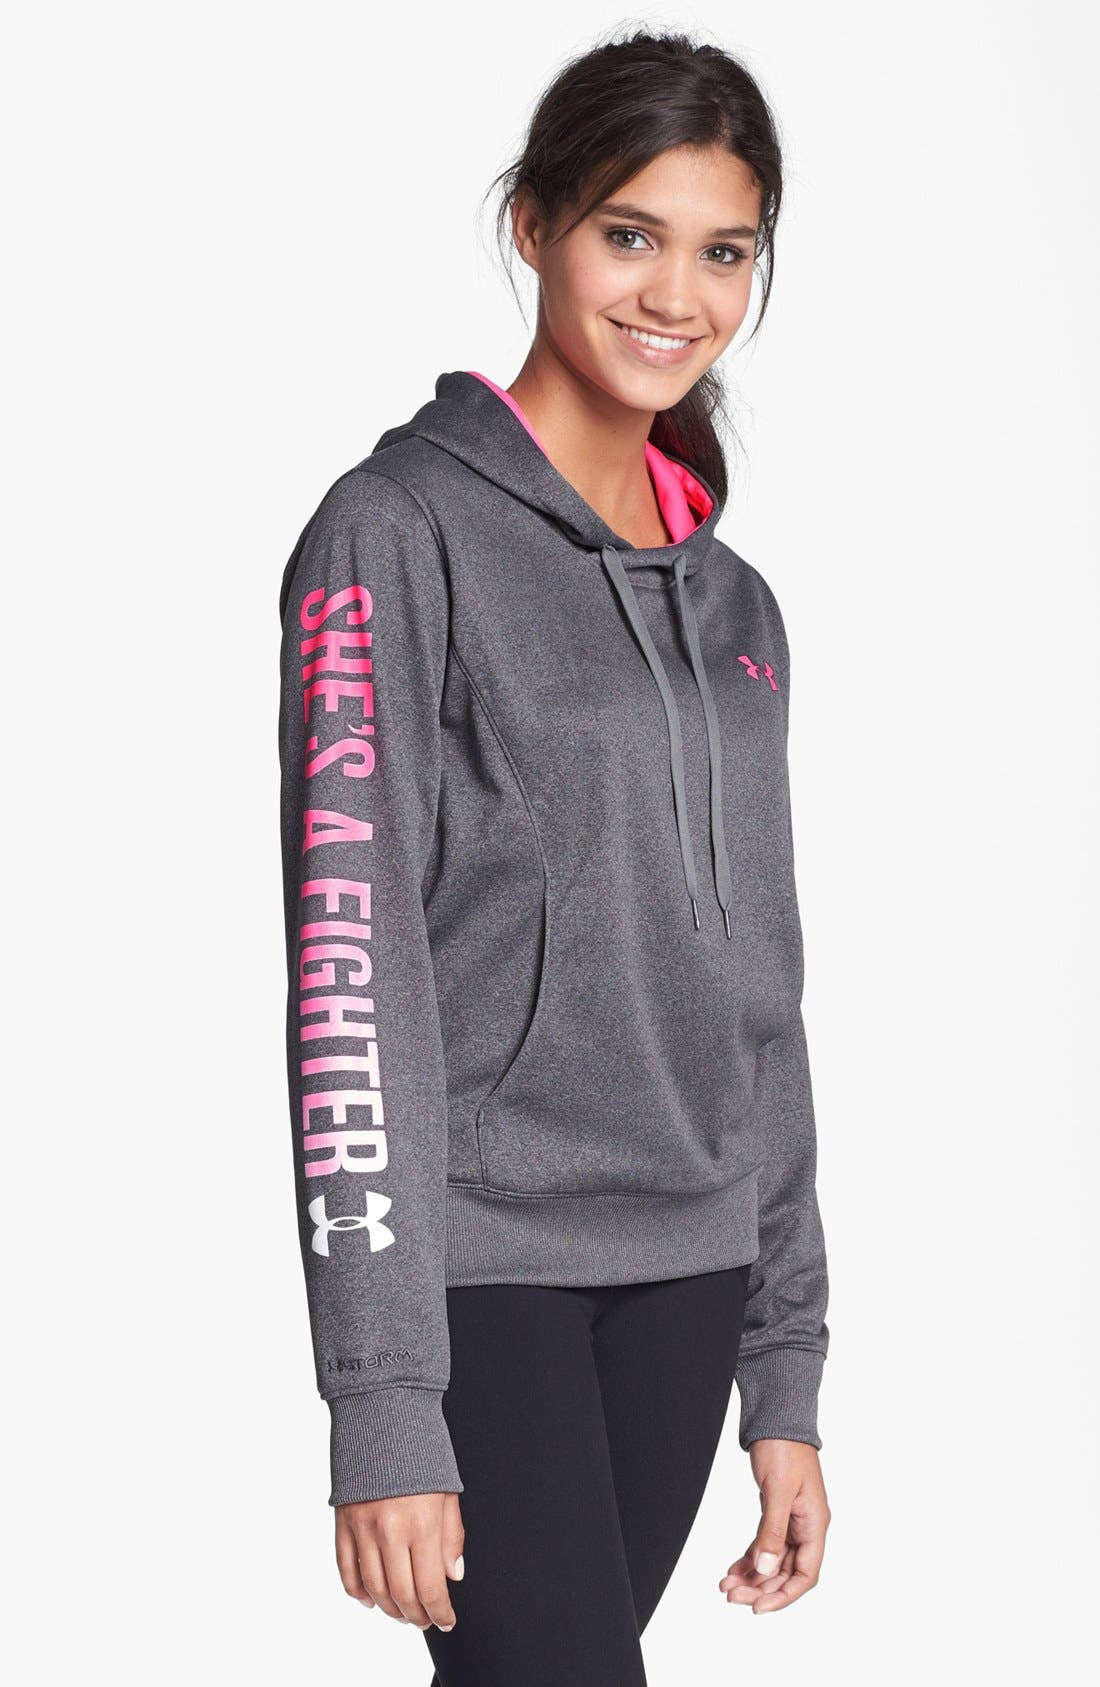 Alternate Image 1 Selected - Under Armour 'Power in Pink - She's a Fighter' Hooded Sweatshirt